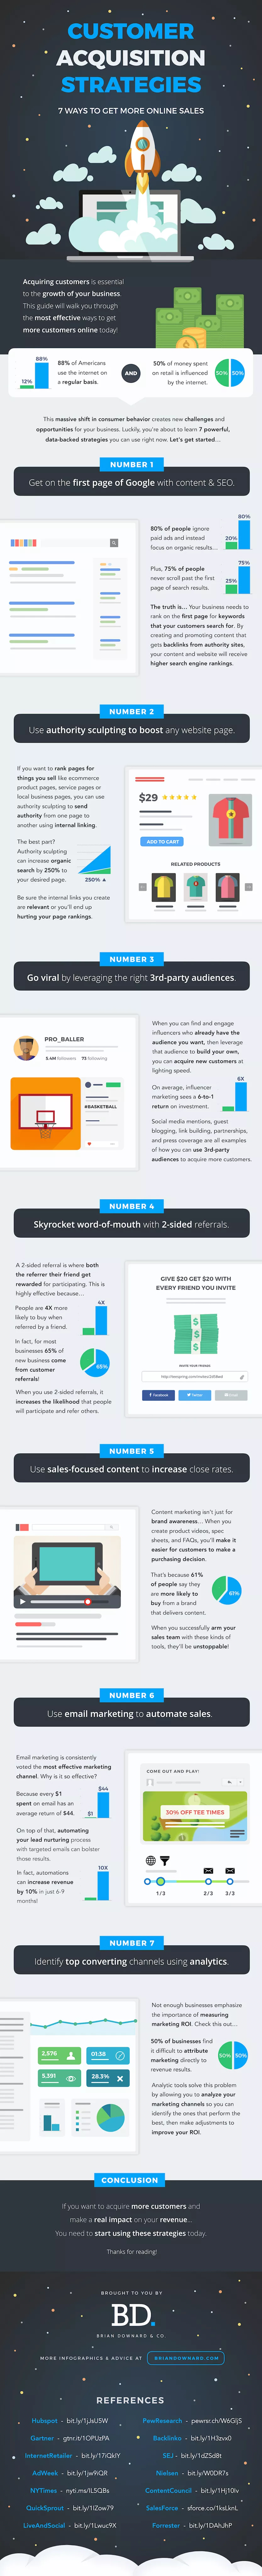 Infographic outlines a range of customer acquisition strategies